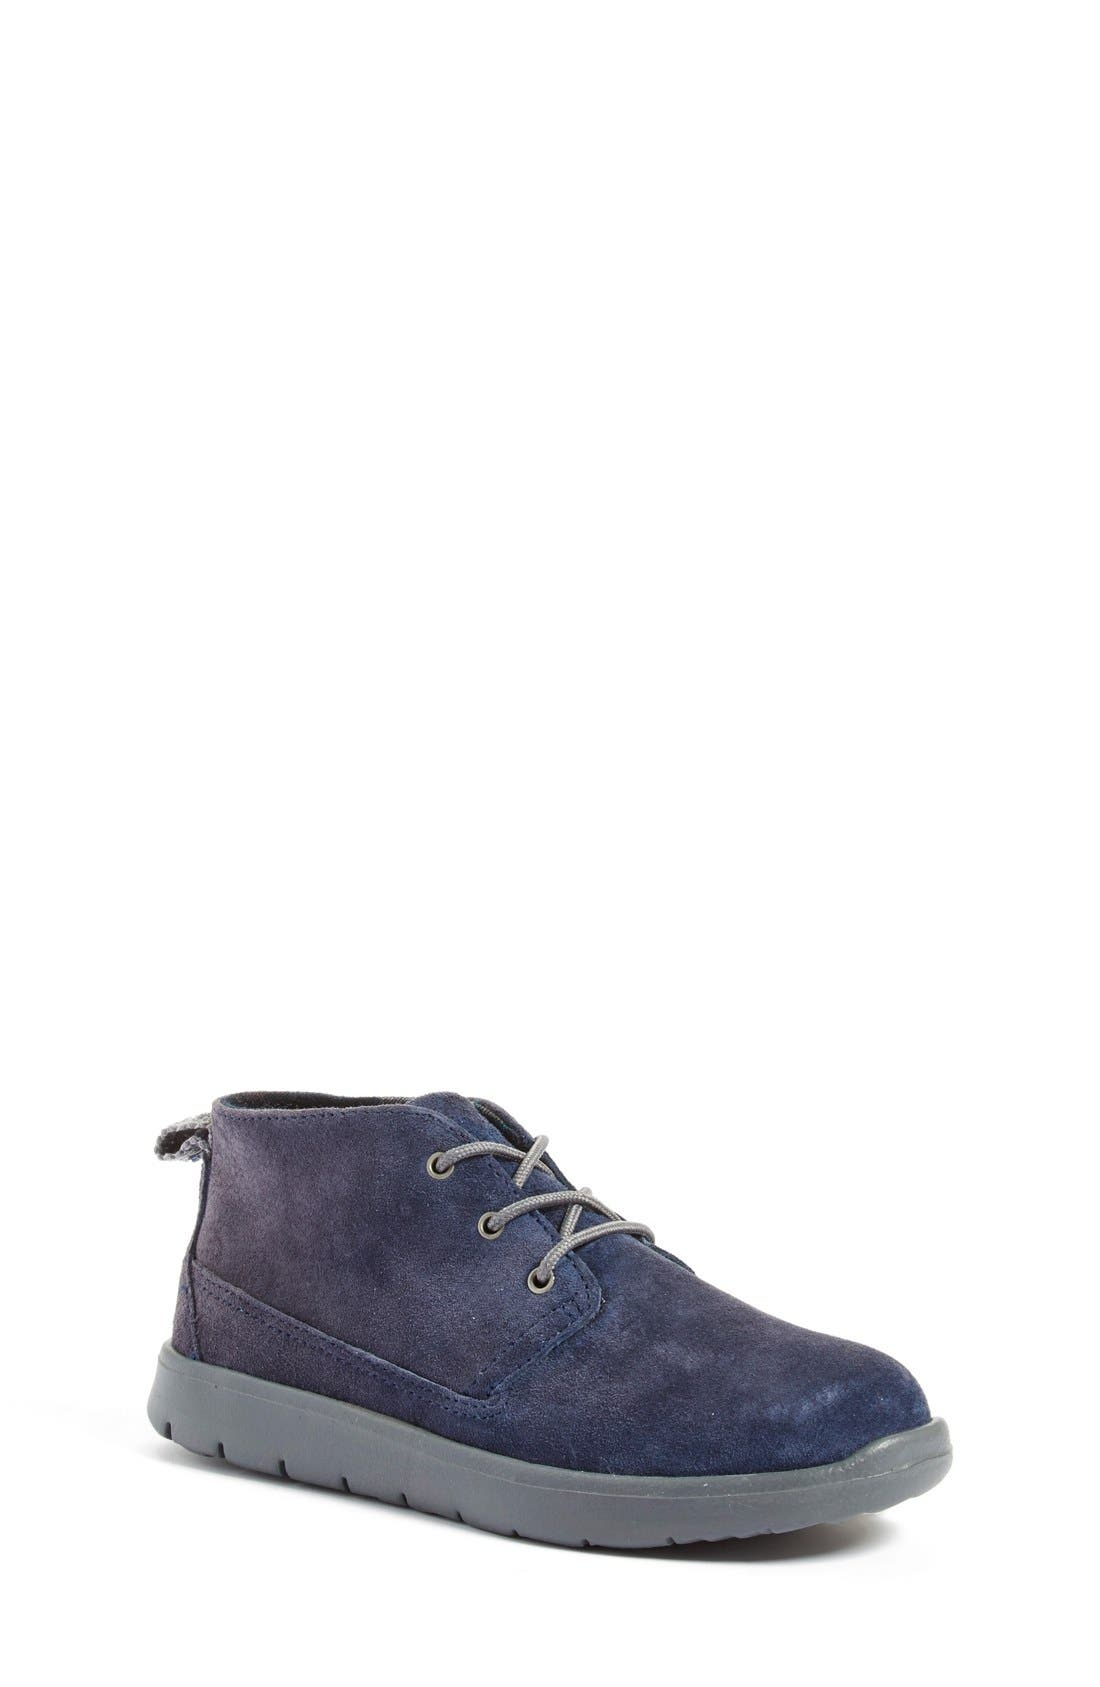 Main Image - UGG® Canoe Chukka Sneaker (Toddler, Little Kid & Big Kid)